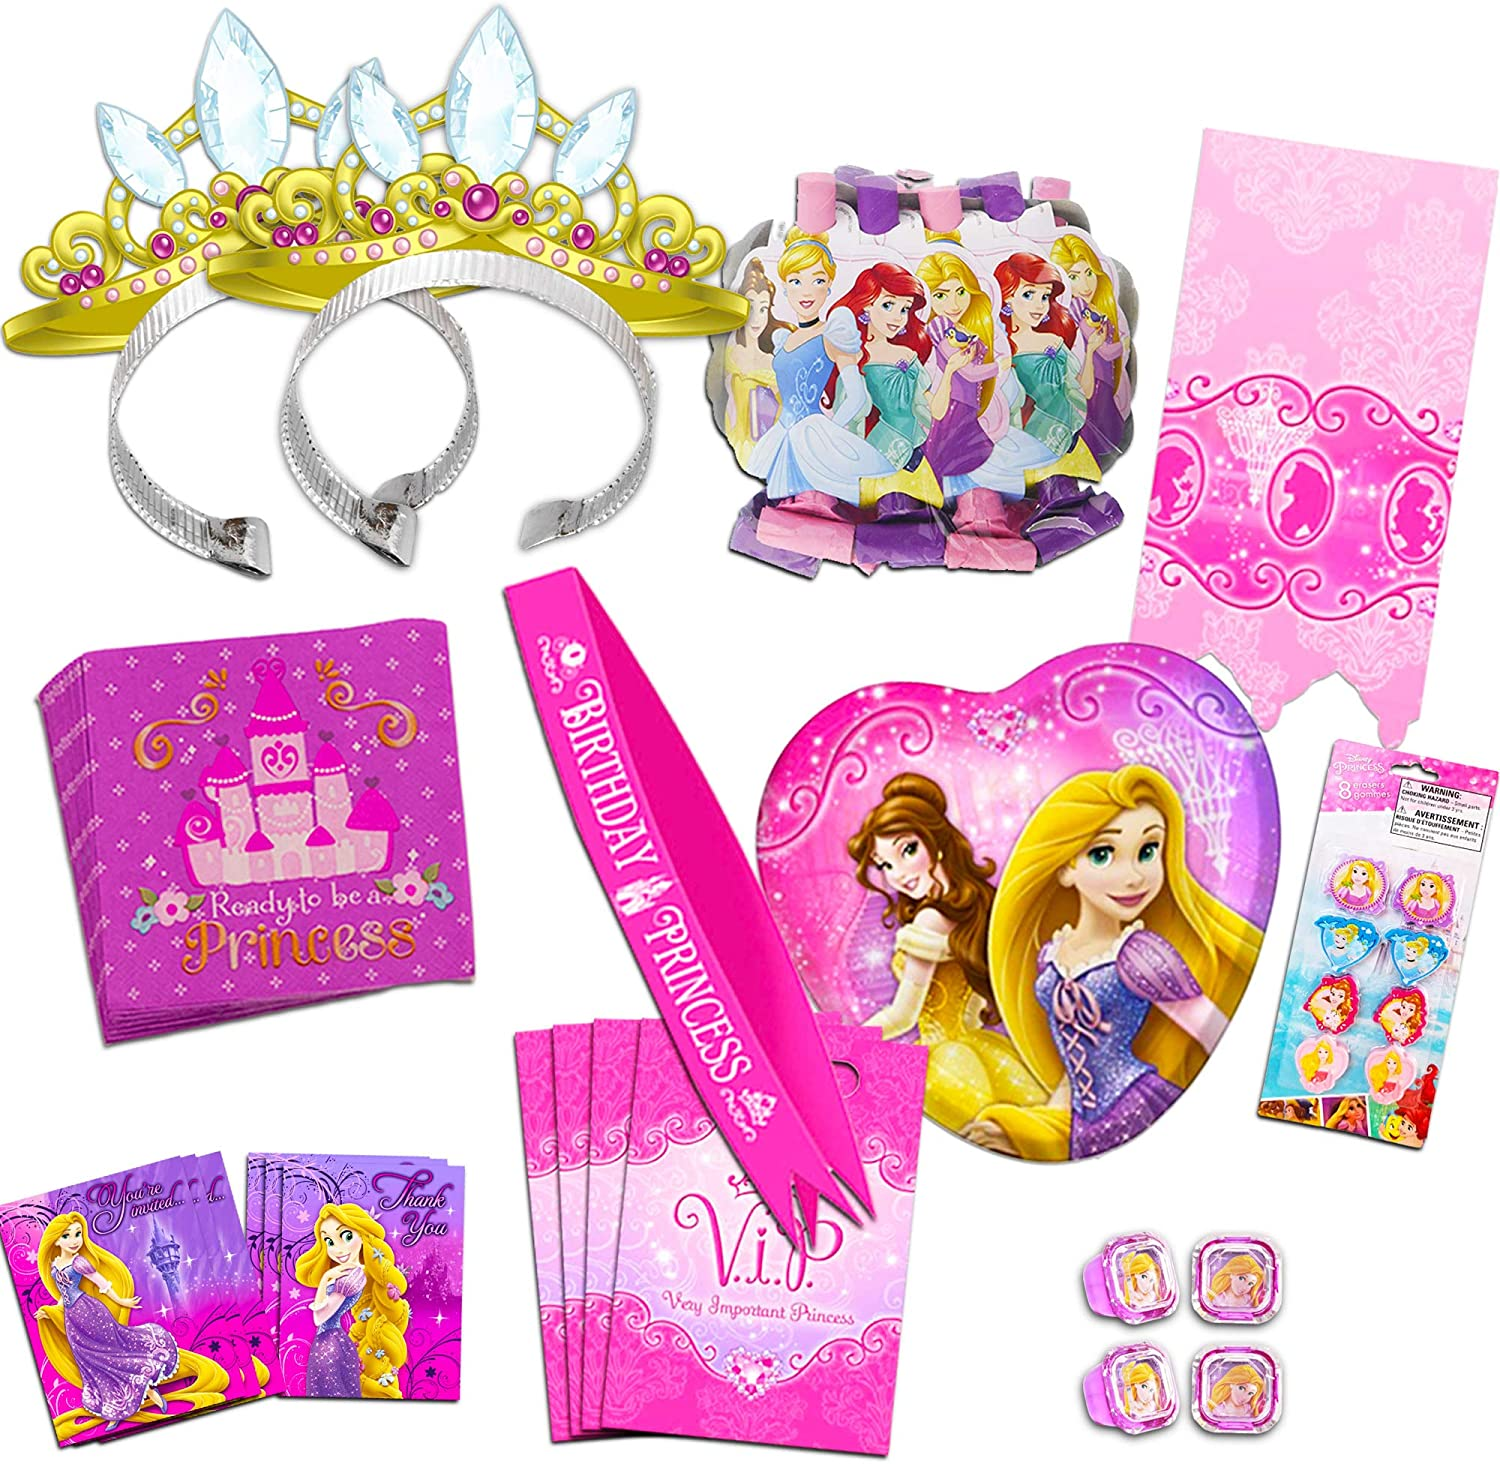 Disney Princess Very Important Princess Birthday Party Supplies Party Horns